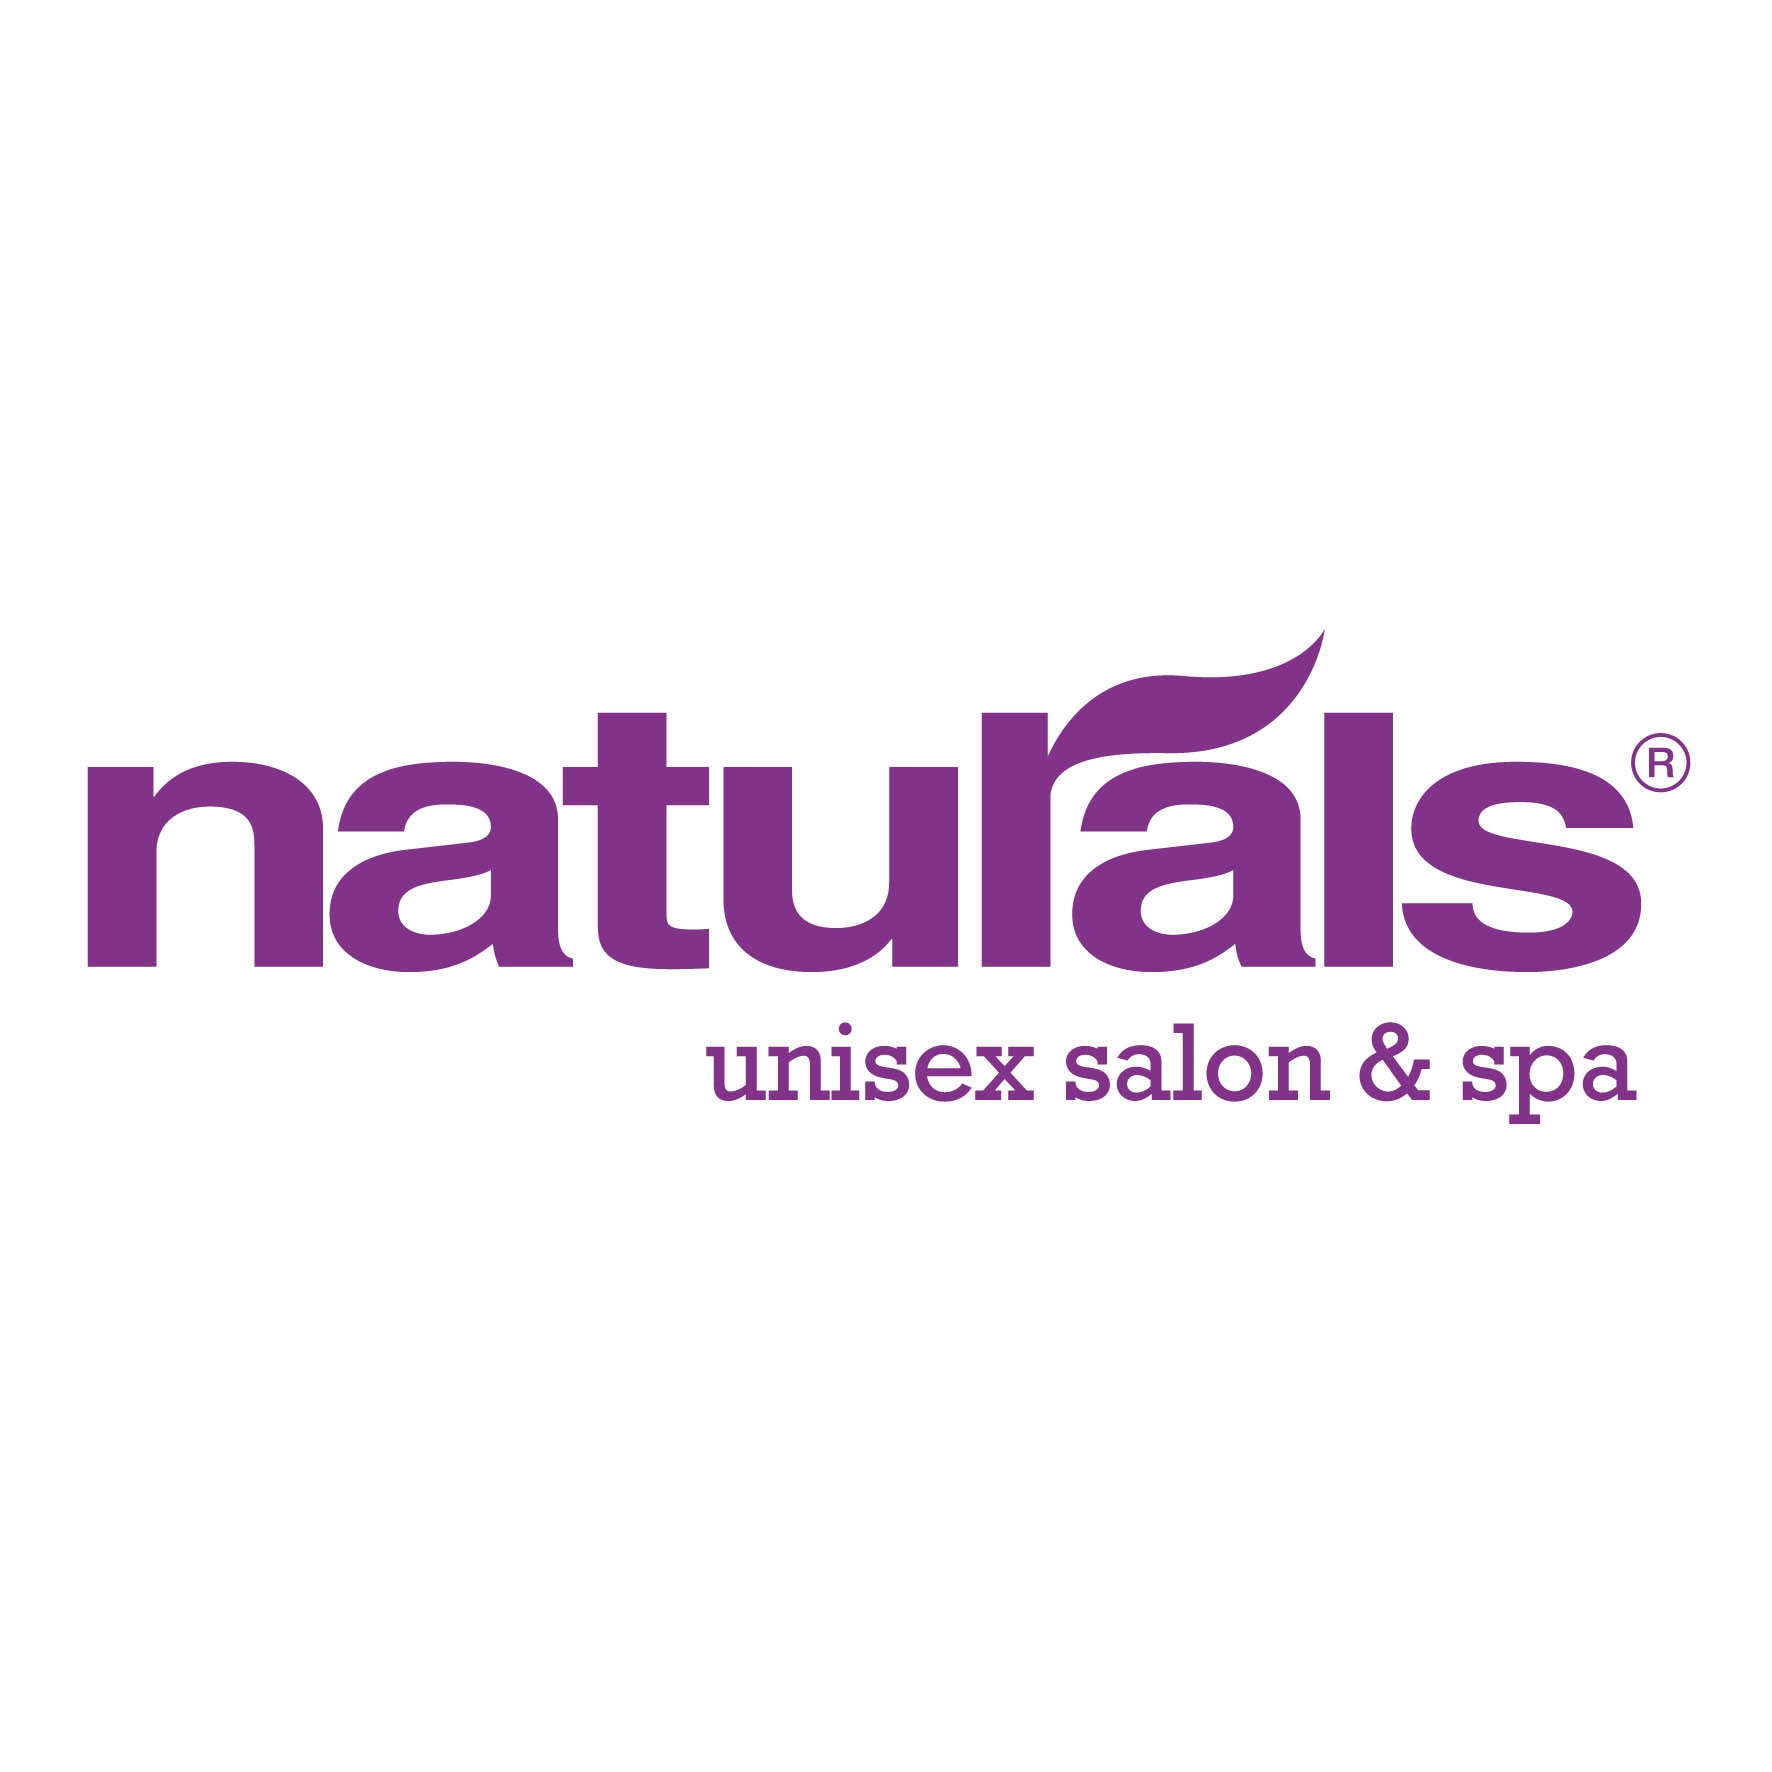 image of Naturals Unisex Salon Spa 0427 2316060 2335080